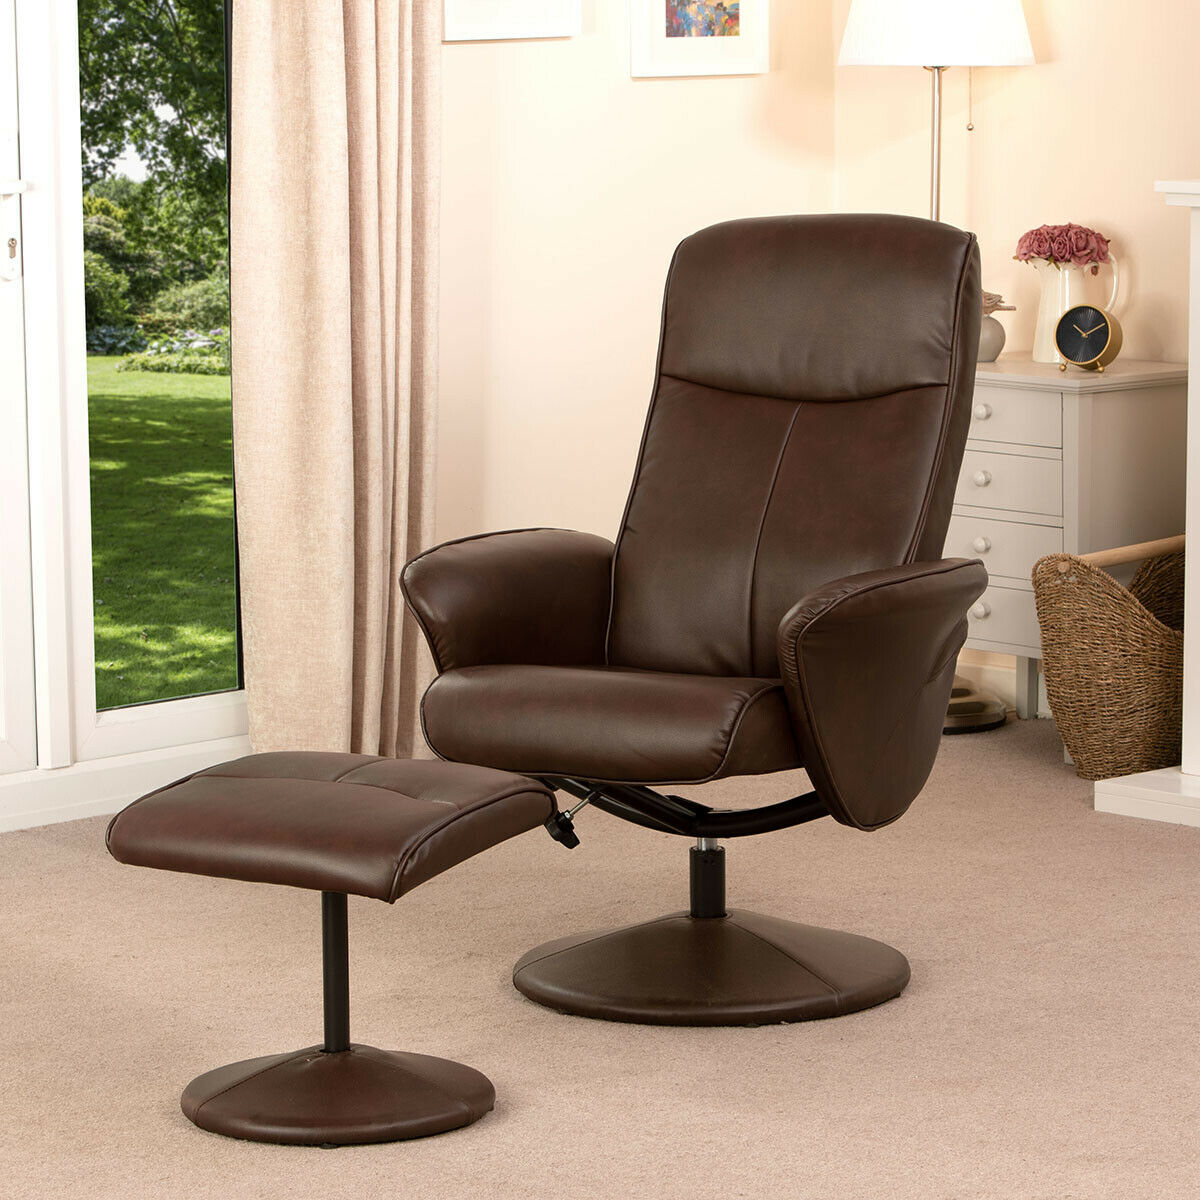 Turin-Faux-Leather-Swivel-Office-Recliner-Chair-With-Free-Footstool thumbnail 22